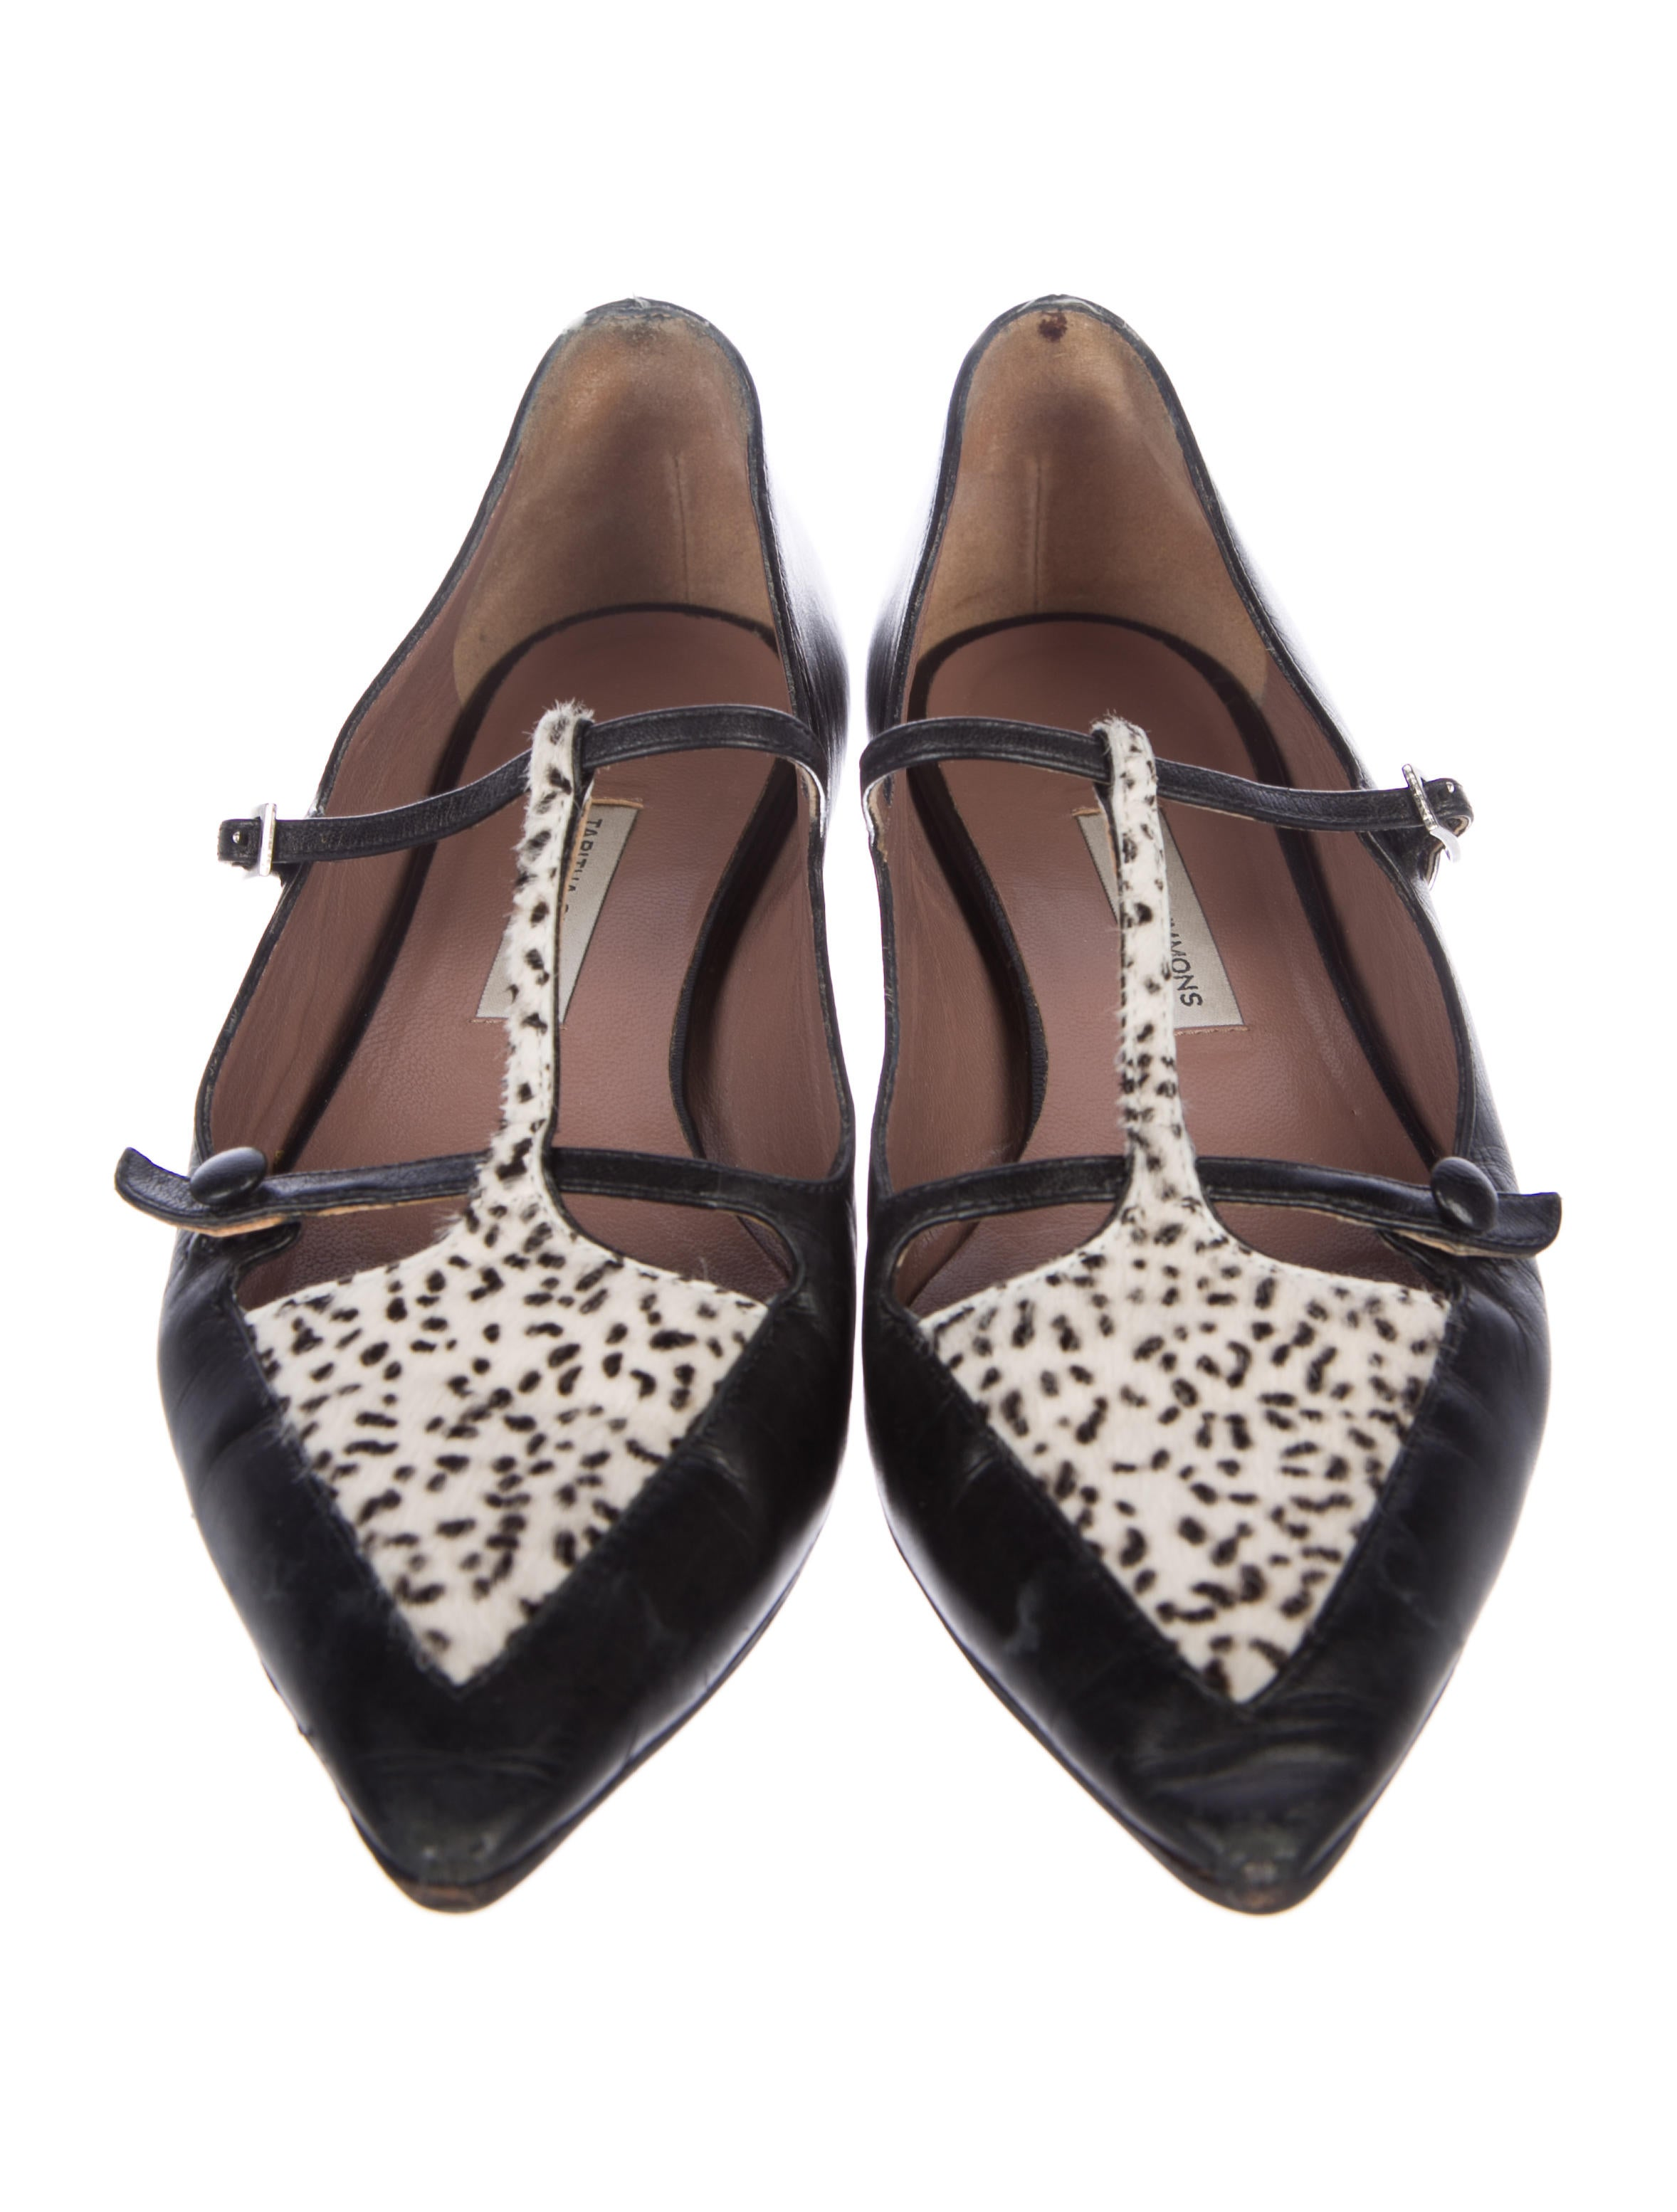 Tabitha Simmons Calf Hair T-Strap Flats discount low shipping fee discount for sale free shipping how much sale discount outlet latest vdePf4yC2W